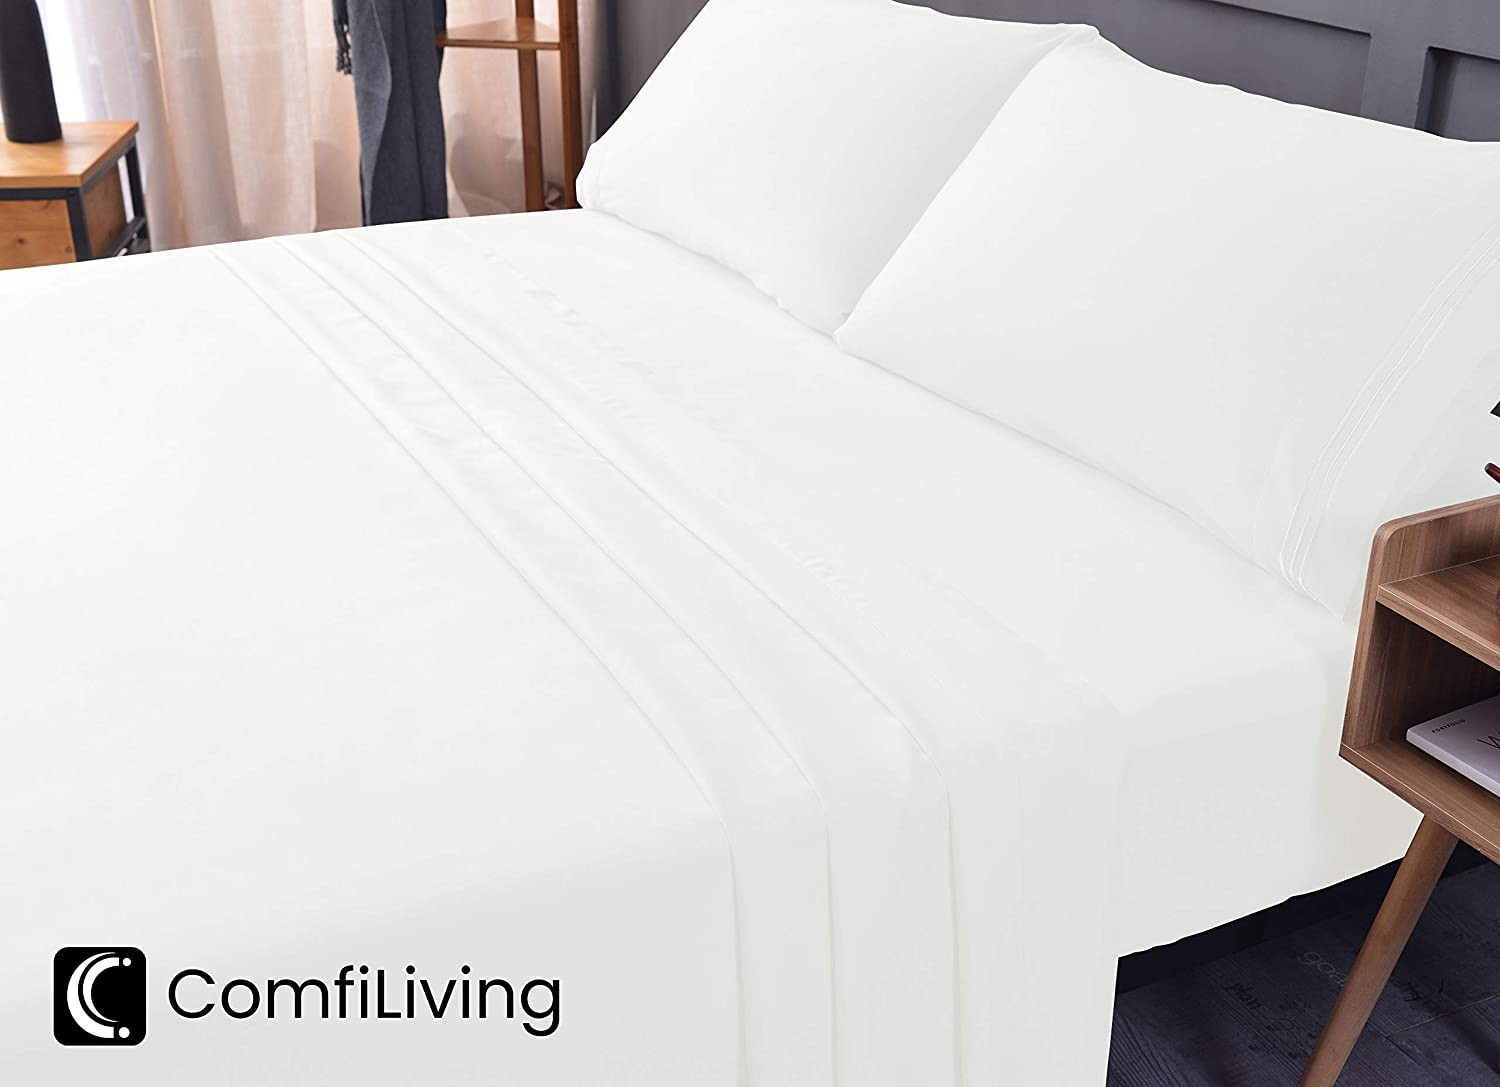 ComfiLiving King Bed Sheet Set - Bamboo,Cooling Sheets, Eco-Friendly, Non-allergenic, Wrinkle Free, Ultra Soft, Fade and Shrink Resistant, Deep Pocket Bedding Sheets - 4 Piece Set (White, King)